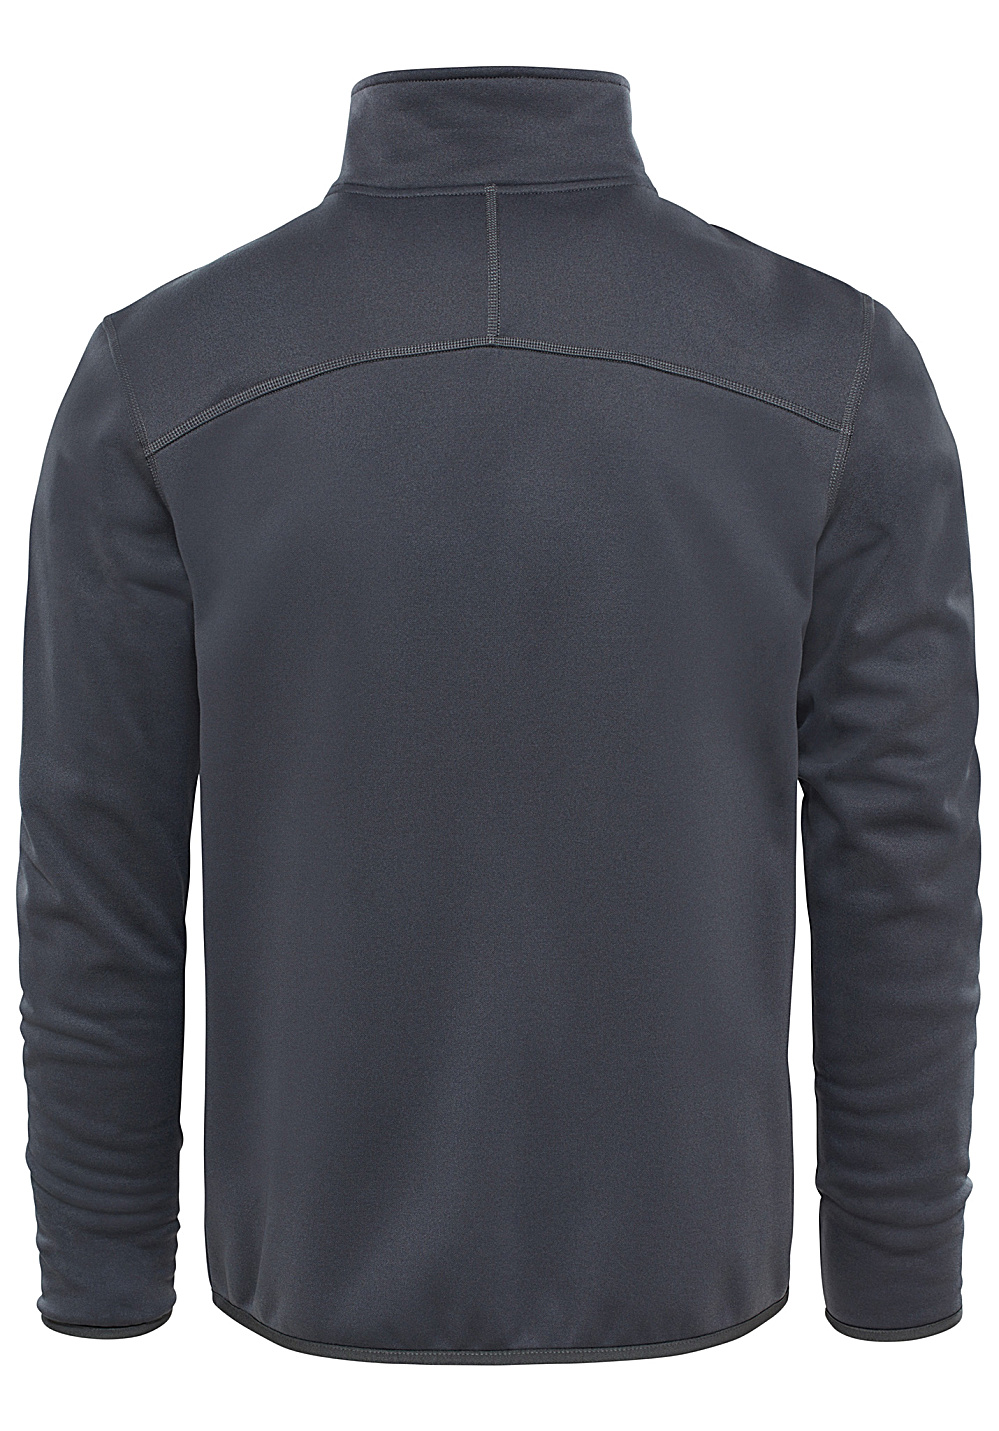 Next. This product is currently out of stock. THE NORTH FACE. Tanken Fz -  Giacca di pile per Uomo 3847d160afae